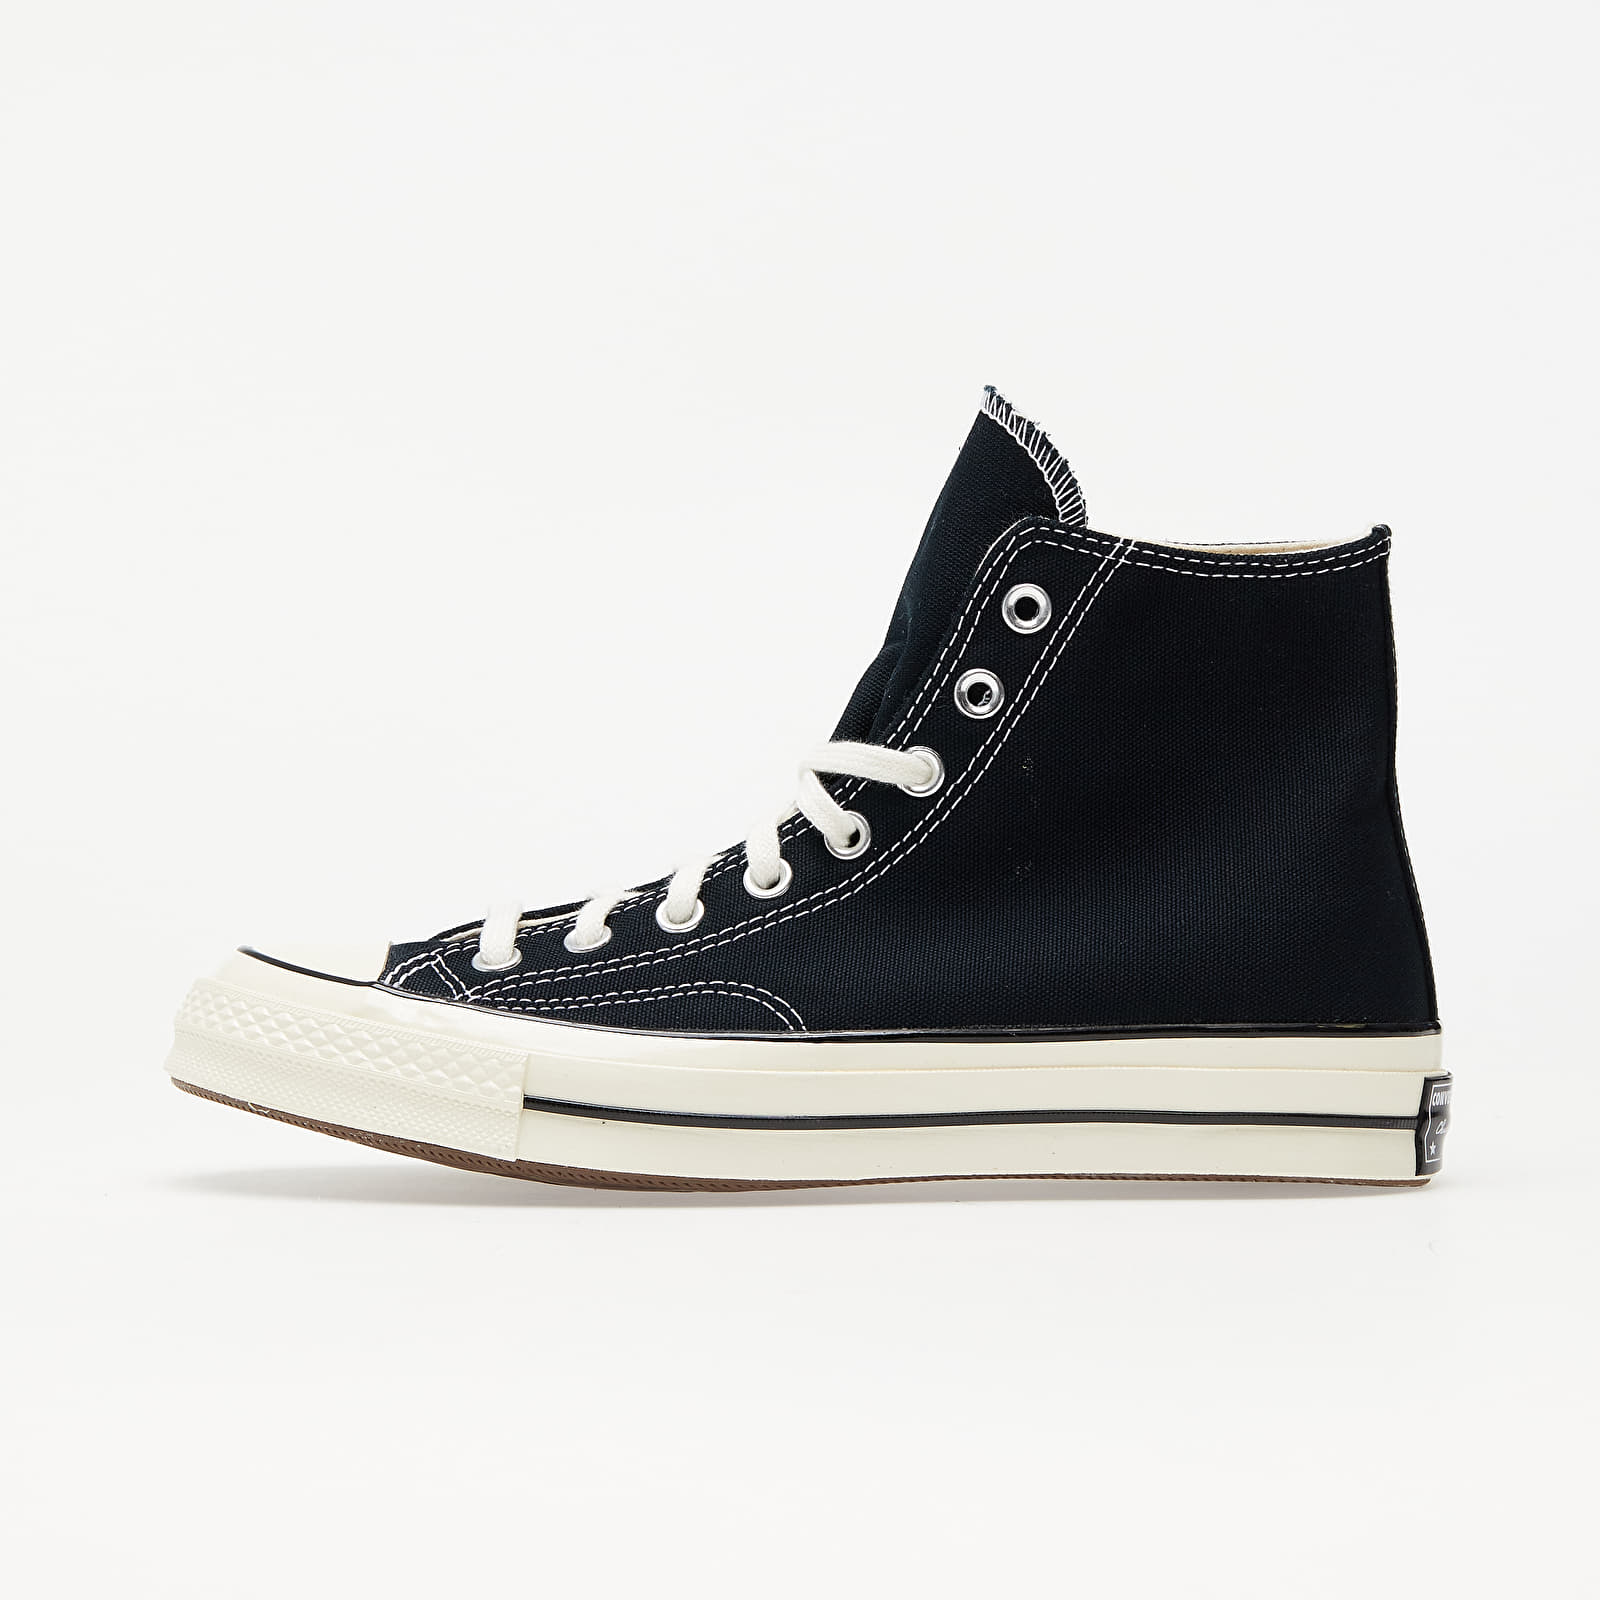 Men's shoes CONVERSE CHUCK TAYLOR ALL STAR 70 HI Black/ Black/ Egret